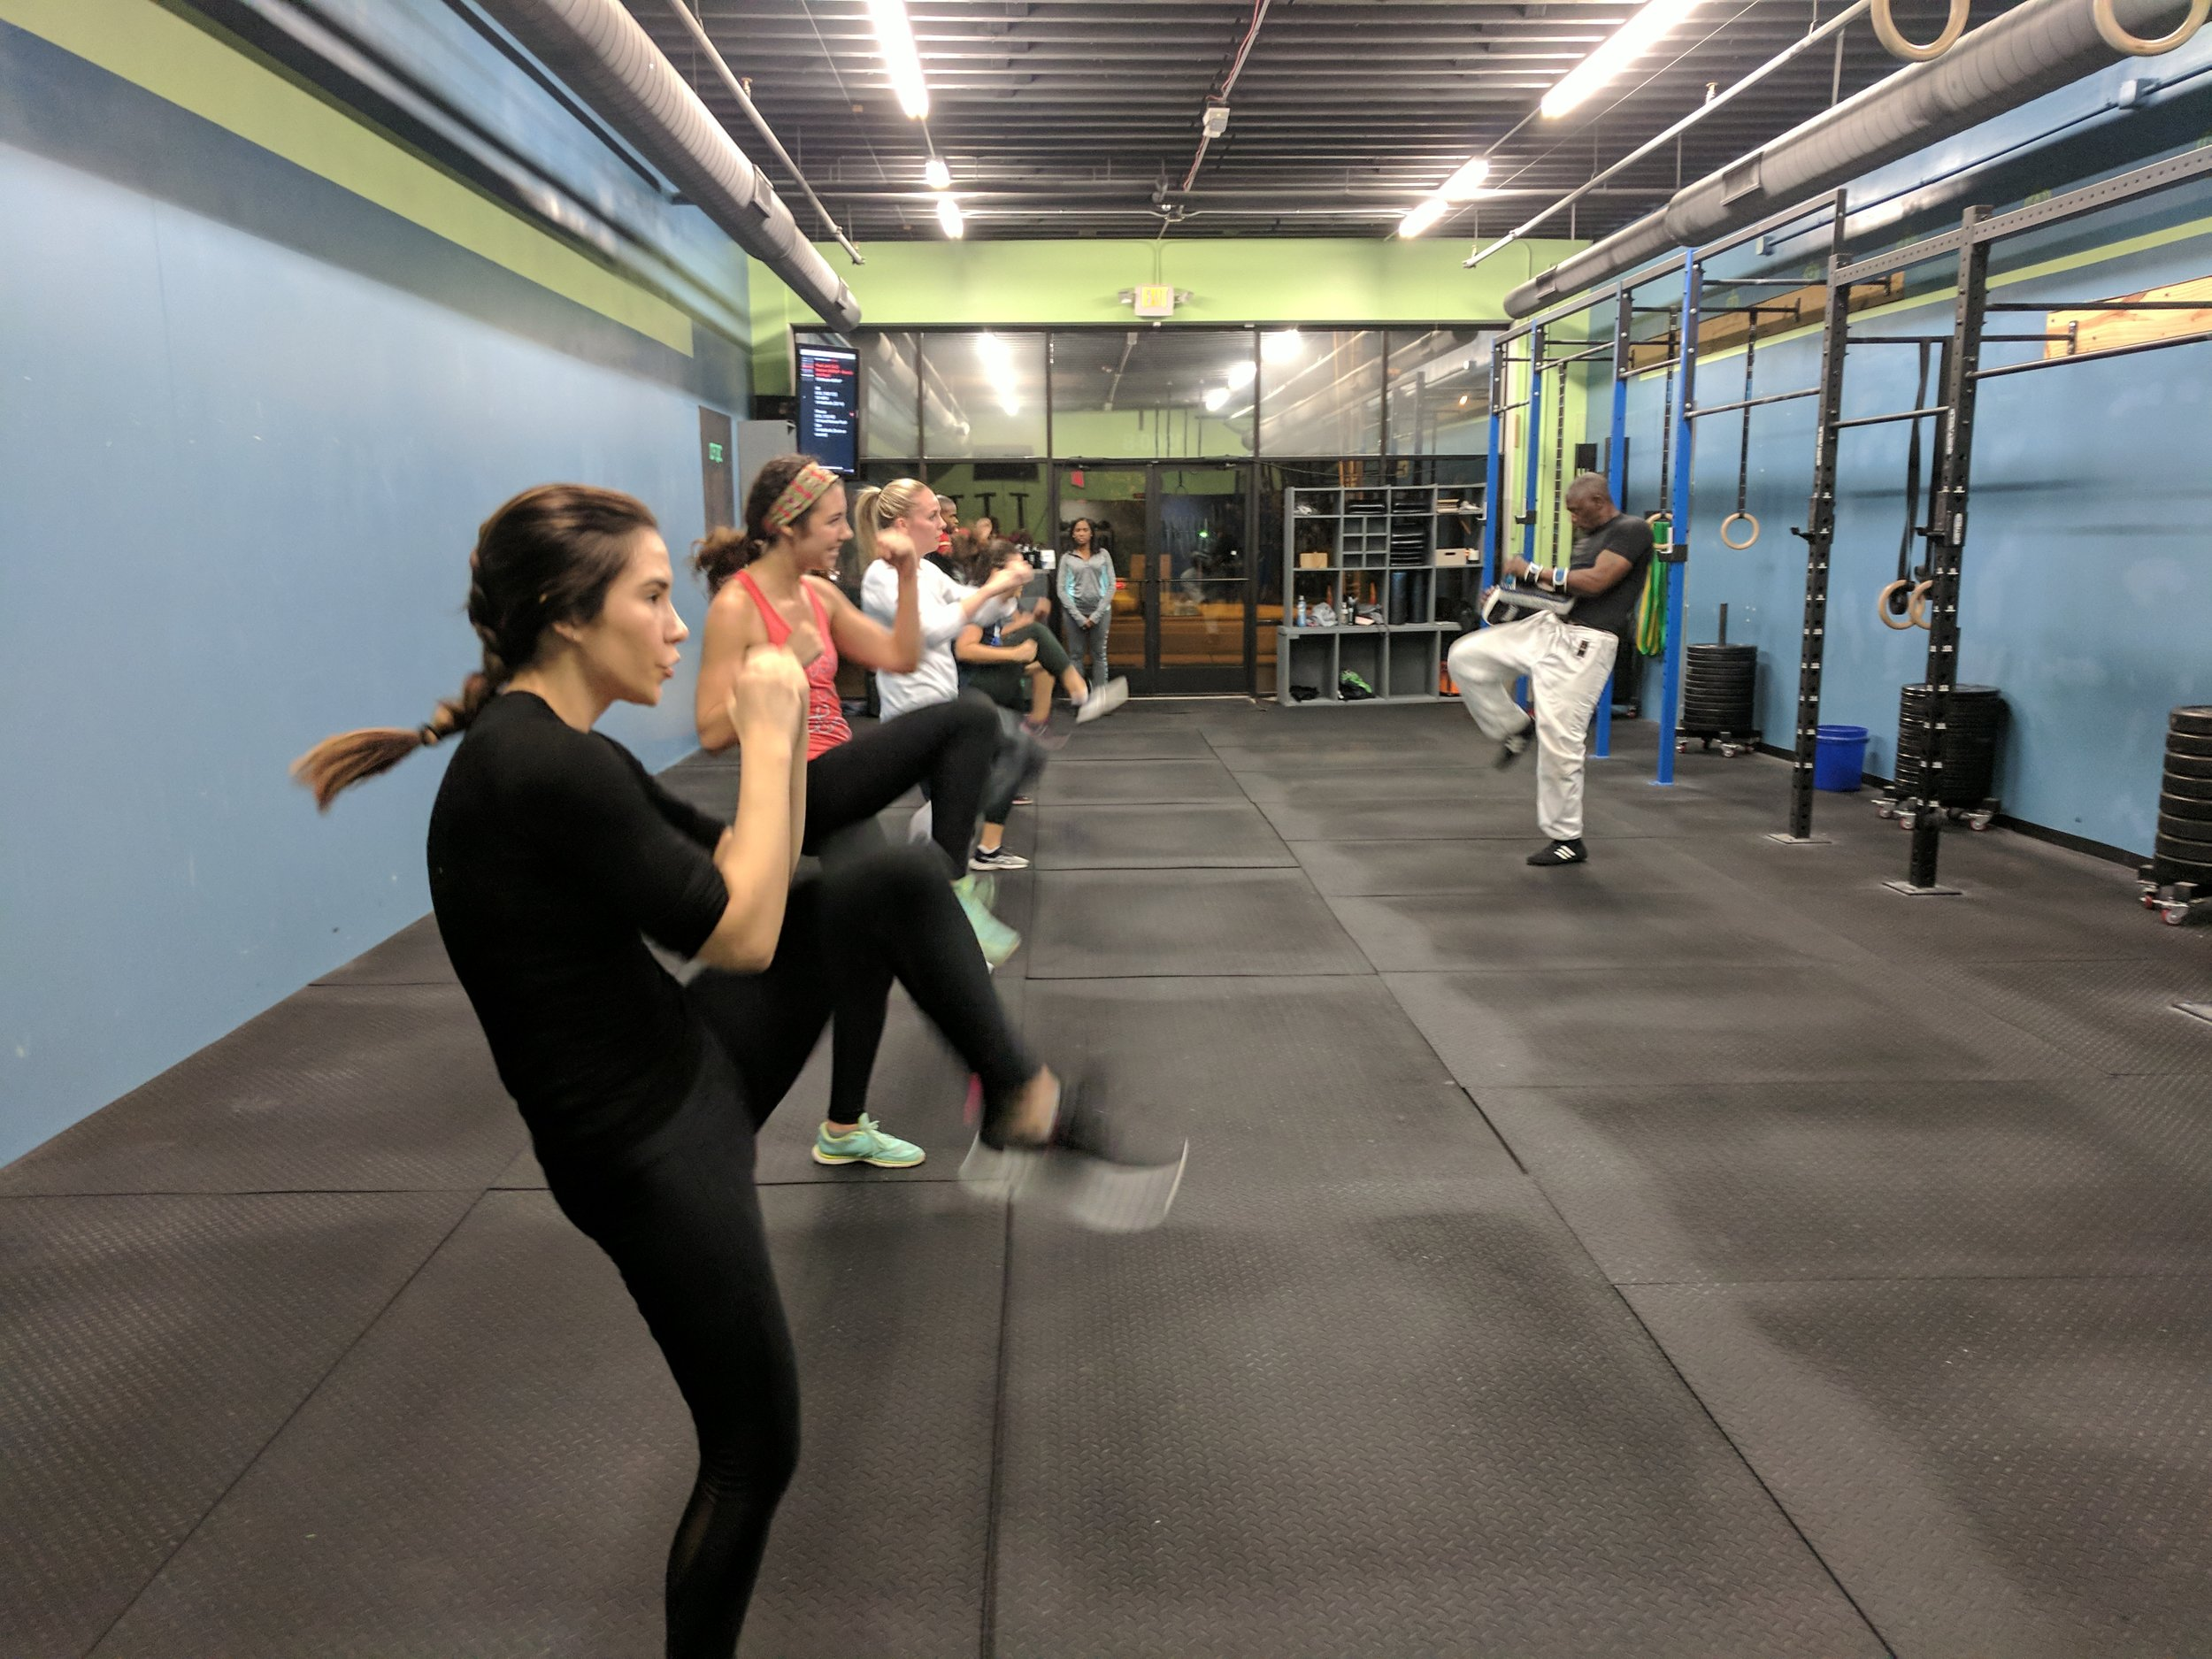 SELF DEFENSE - Learn both the physical and mental aspects of defense that you need to protect yourself in an attack. Attendees should expect to get a great workout, gain familiarity with common attack situations, and learn different techniques for defending yourself.